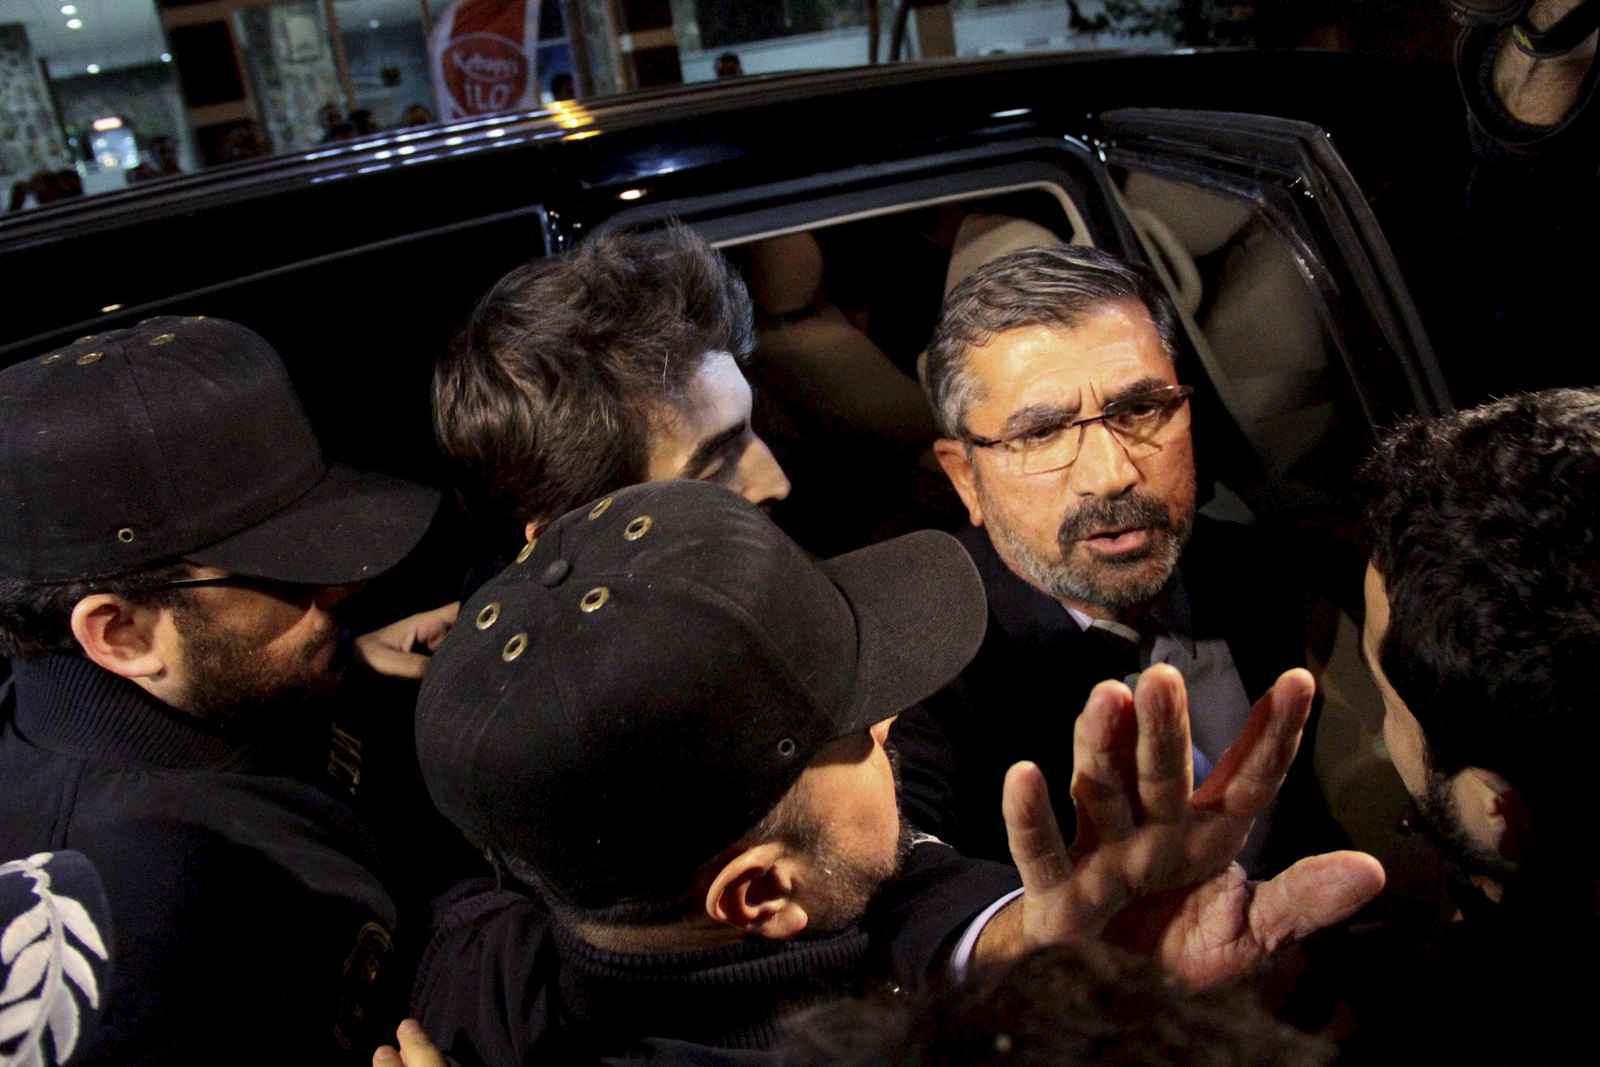 Tahir Elci, the head of Diyarbakir Bar Association, (2nd R) is escorted by plainclothes police officers as he leaves his office in Diyarbakir, Turkey, early October 20, 2015 in this file photo.   An unidentified gunman on November 28, 2015 killed the top Kurdish lawyer who had been criticised in Turkey for saying the banned Kurdistan Workers Party (PKK) was not a terrorist organisation. Witnesses said Bar Association President Elci was shot in the head after making a statement to the media in Diyarbakir, the largest city in Turkey's troubled, mainly Kurdish southeast. Picture taken October 20, 2015. REUTERS/Sertac Kayar/Files